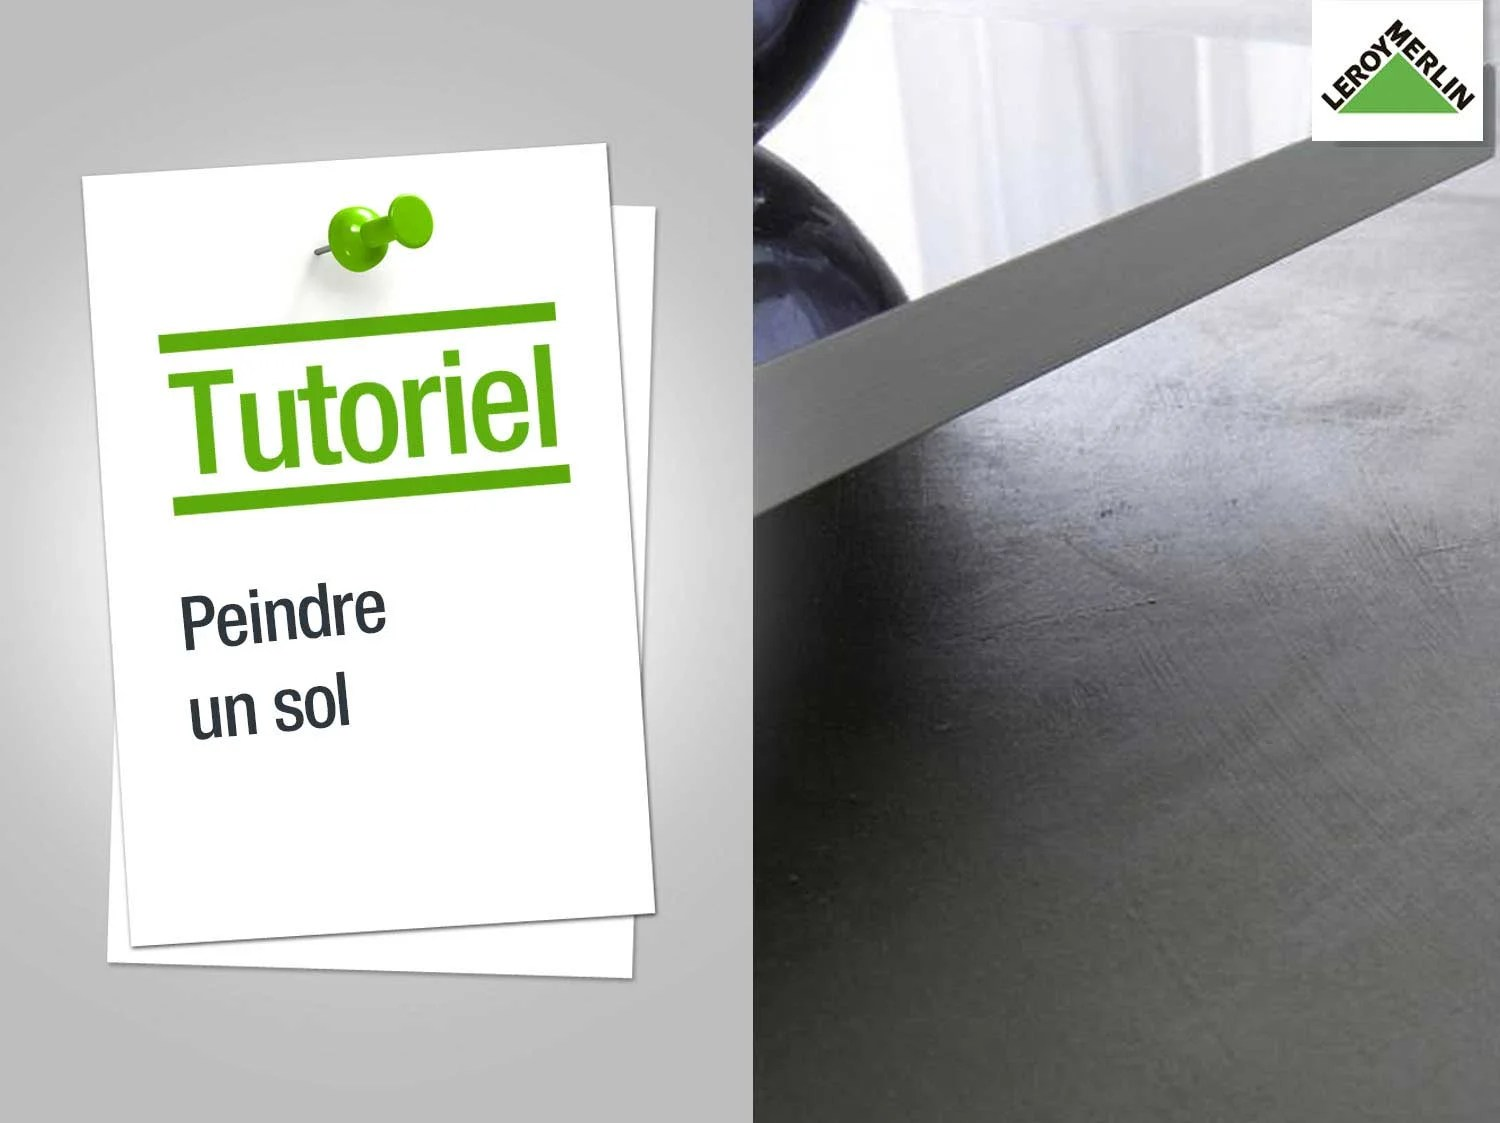 Colorant Joint Carrelage Leroy Merlin Comment Peindre Un Sol Leroy Merlin